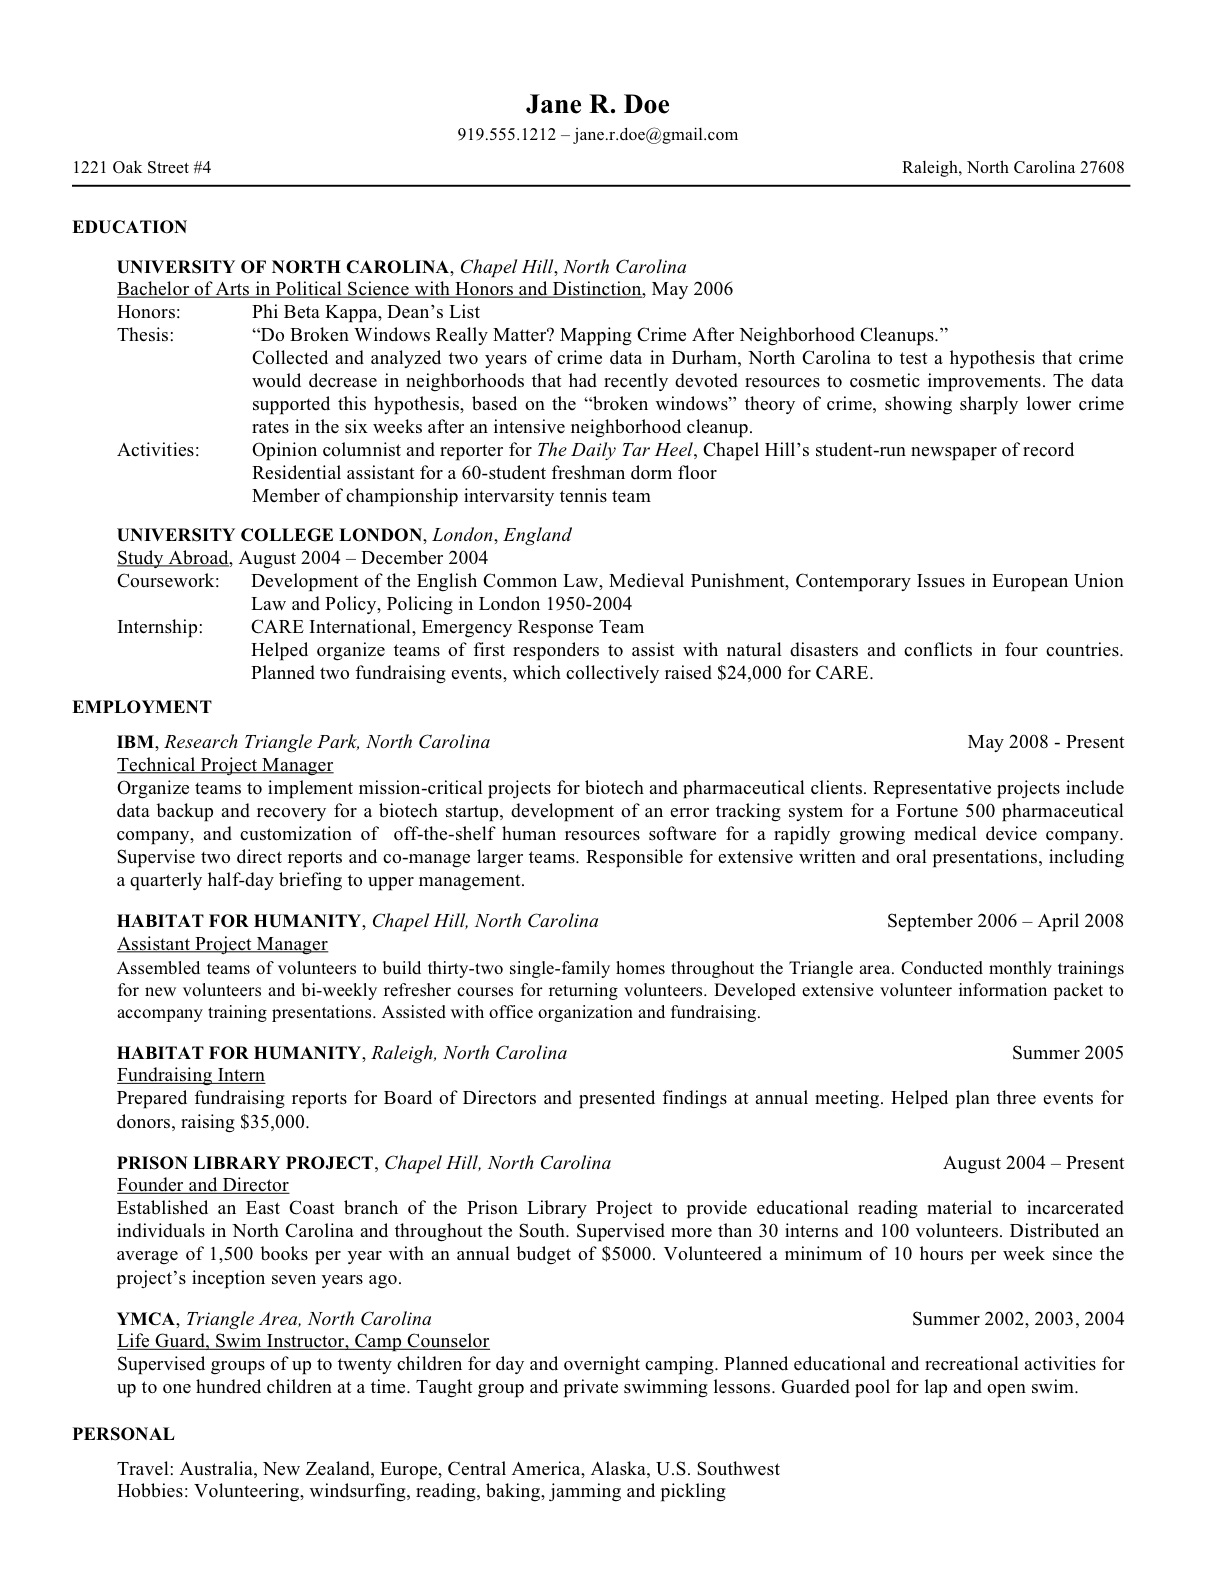 janes revised resume - Law School Application Resume